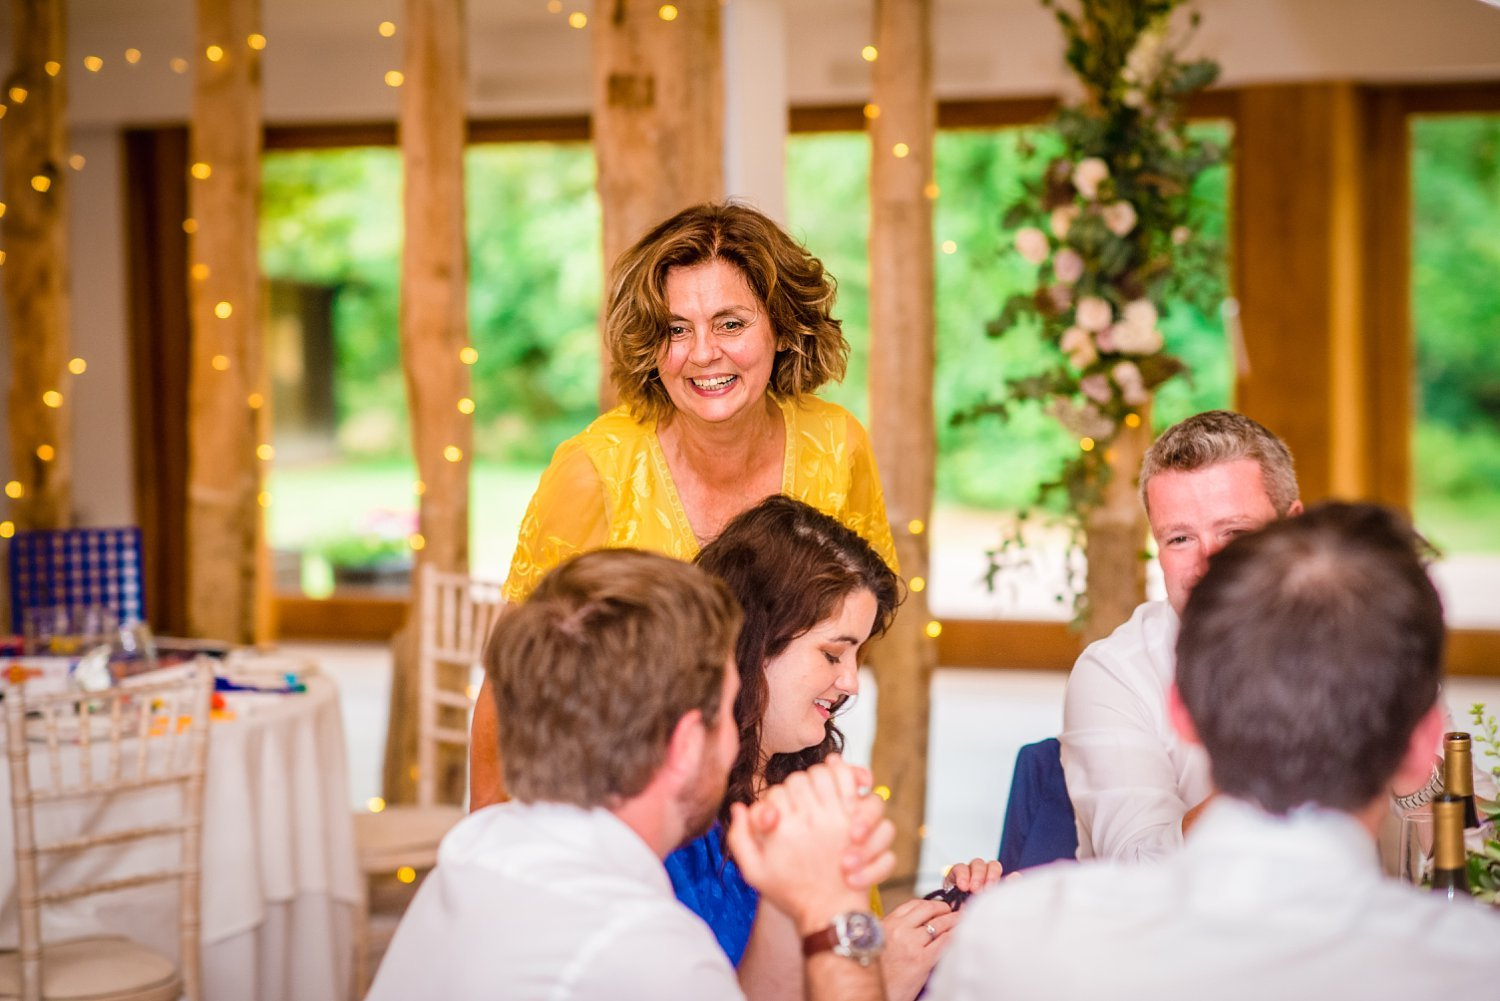 Colville Hall Weding Photographer-mother of the bride is laughing